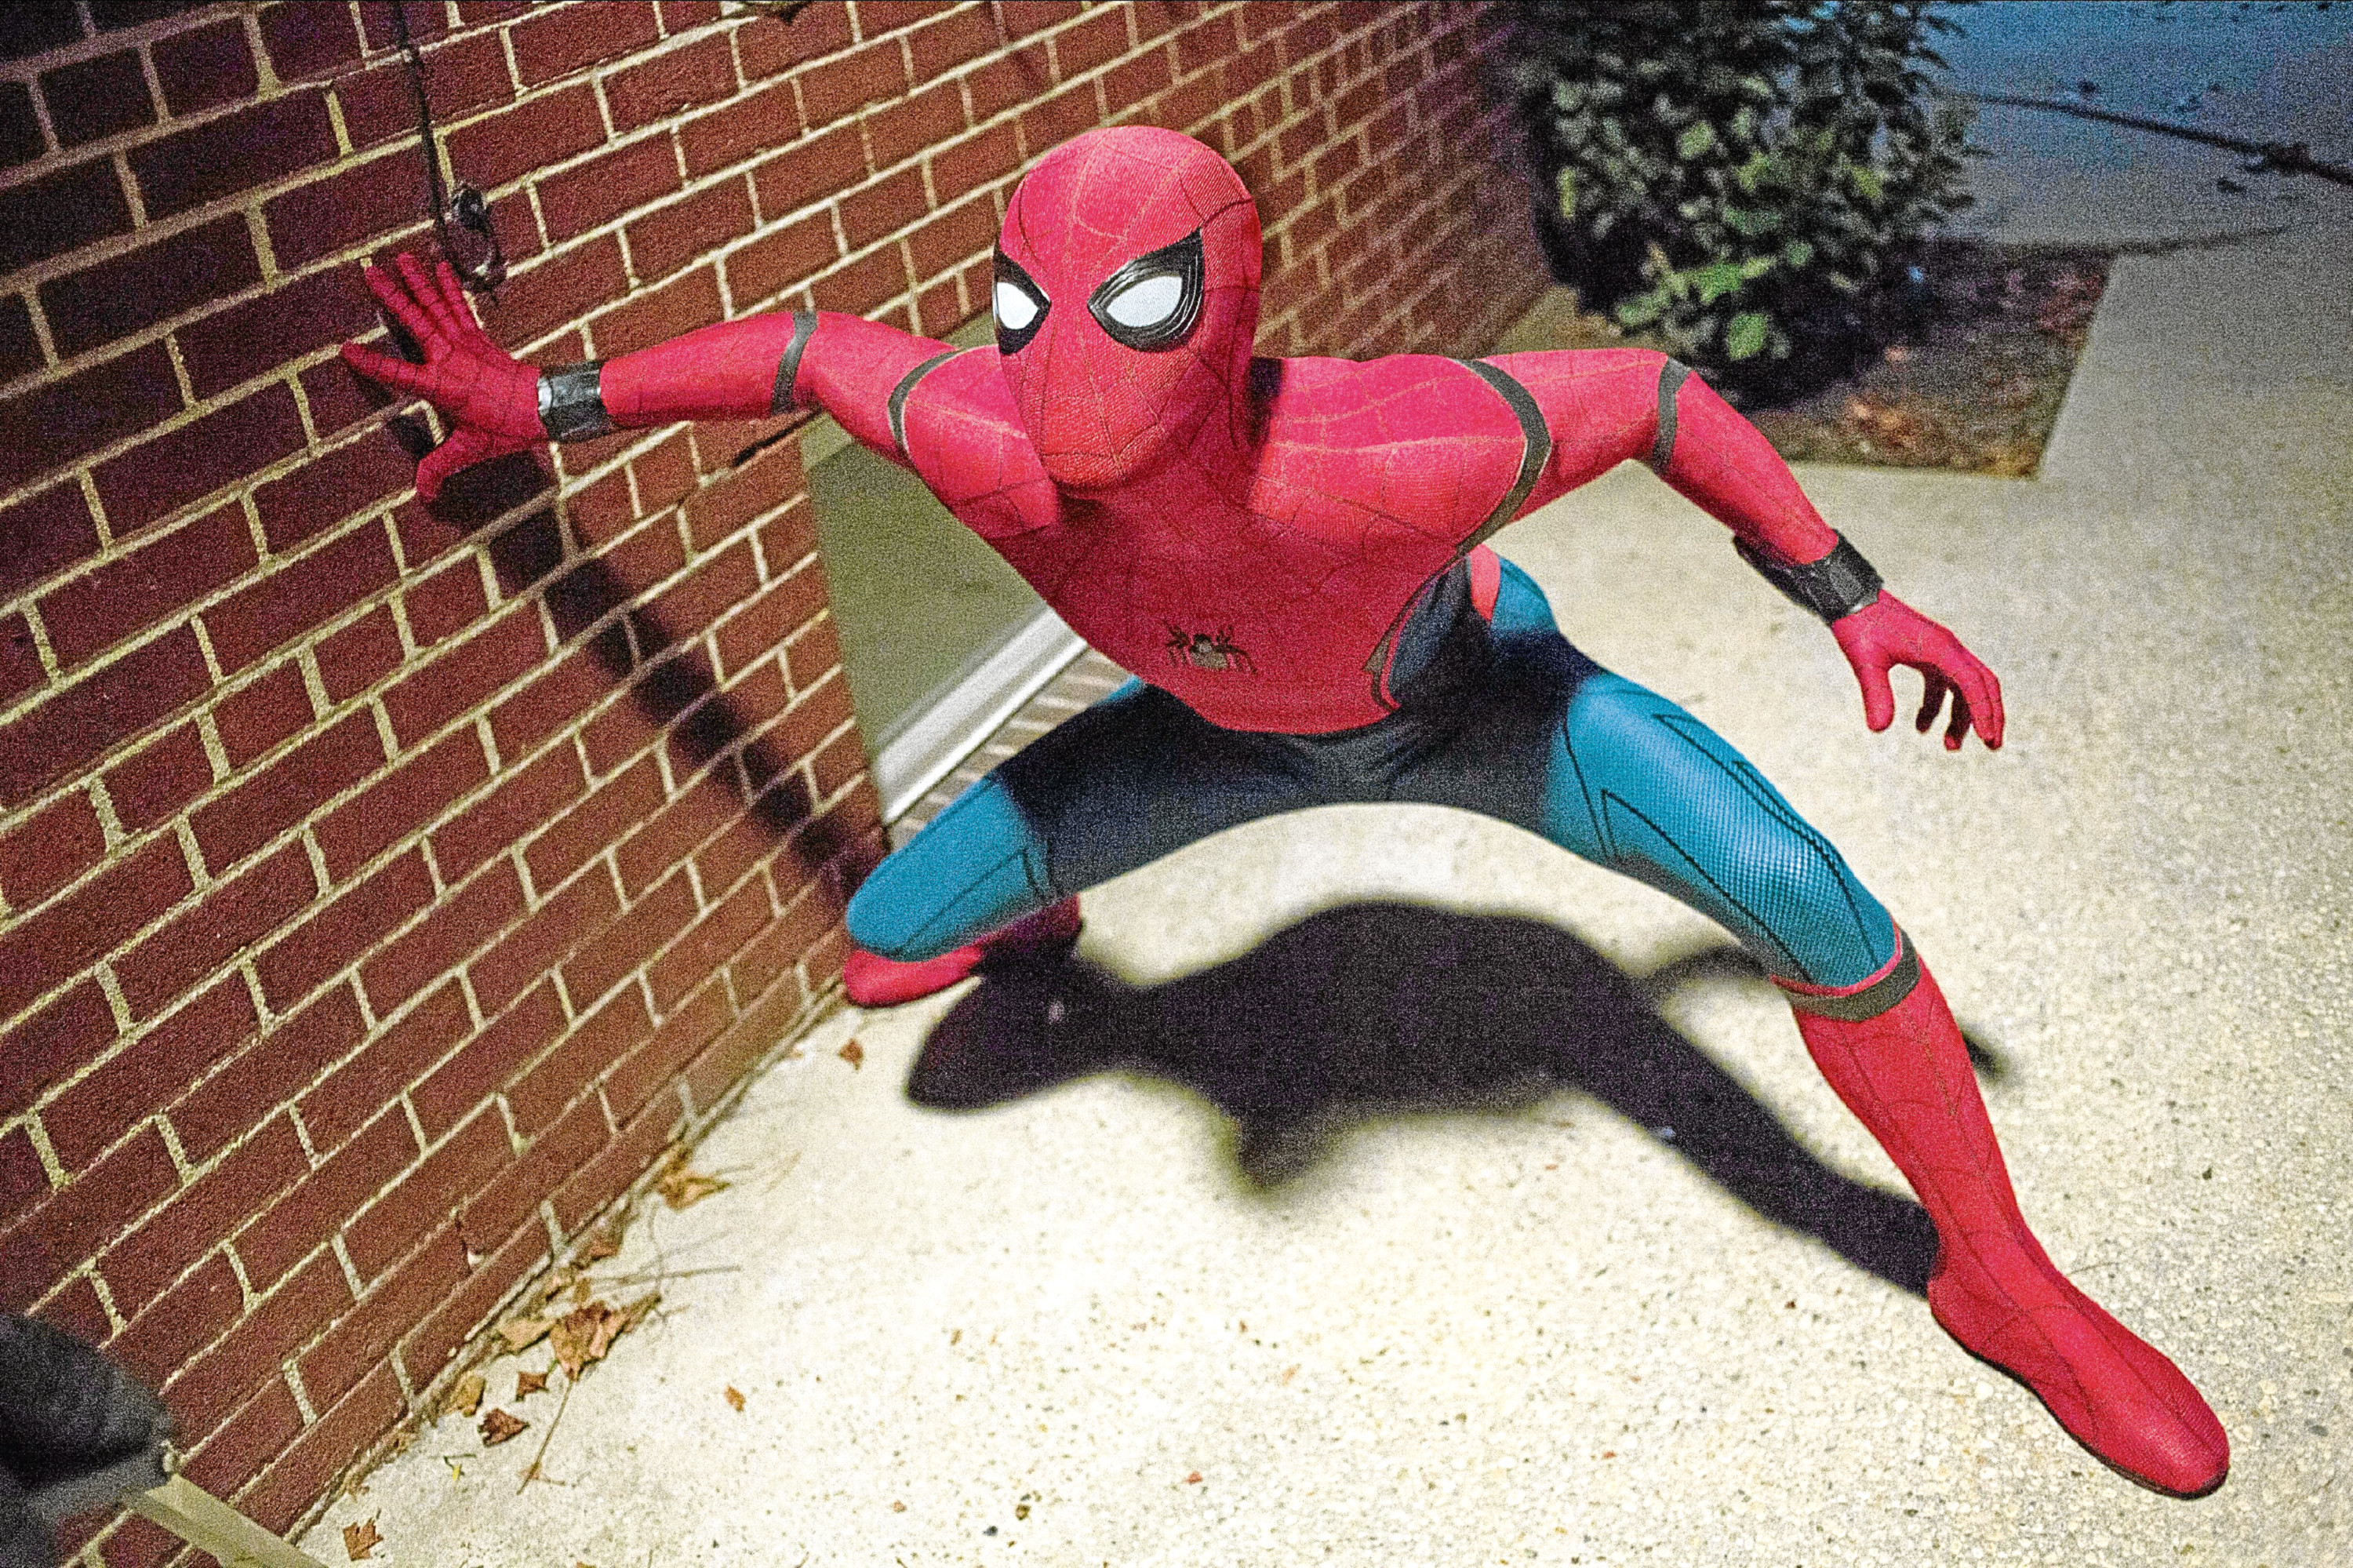 Dominic's son Tom Holland plays Spider-Man in the latest Marvel film (Allstar/MARVEL STUDIOS/COLUMBIA PICTURES)